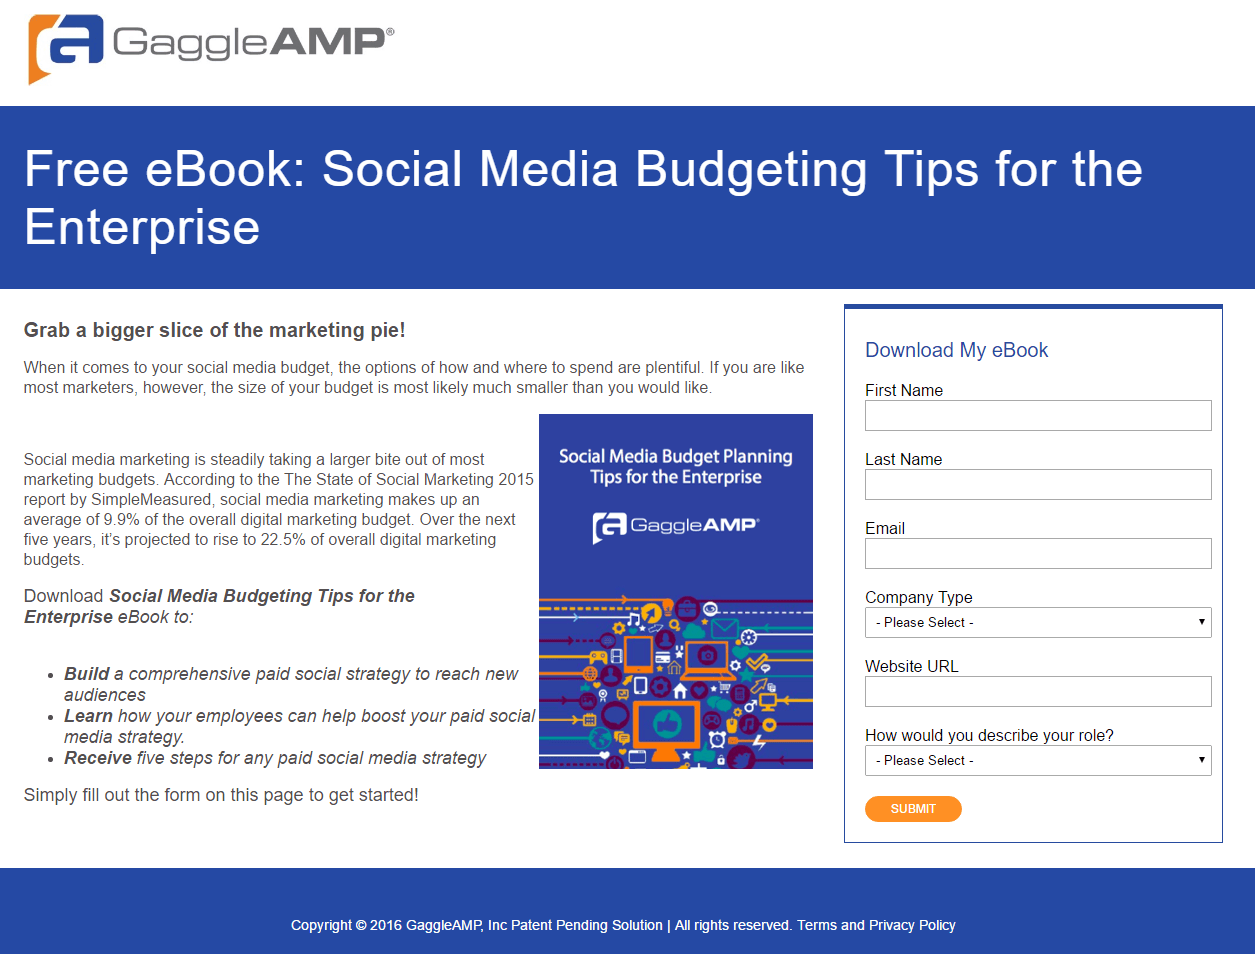 This Picture Shows Marketers How GaggleAMP Uses An Ebook Landing Page To Generate Leads And Maximize